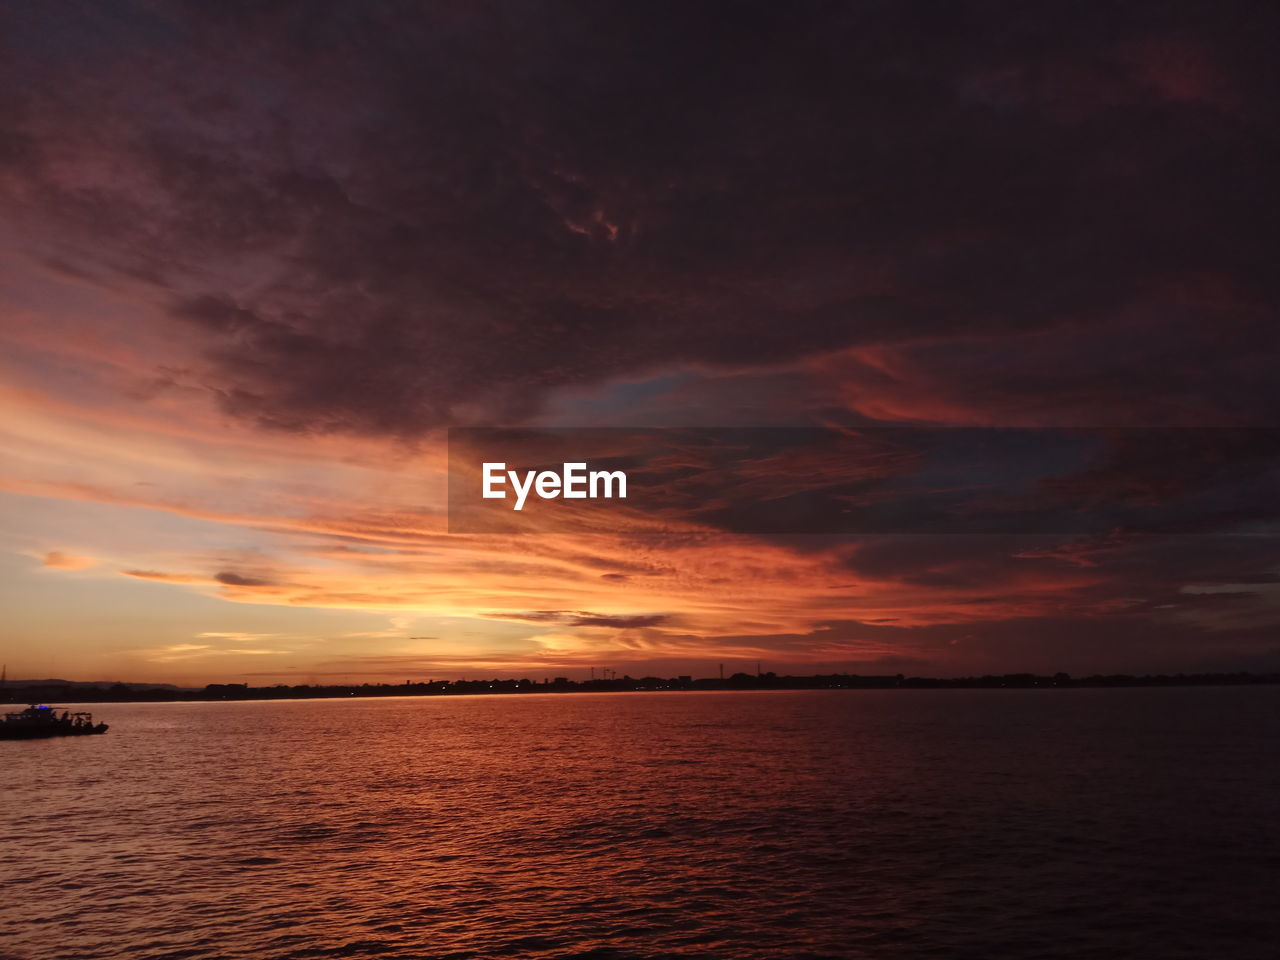 sky, sunset, cloud - sky, water, scenics - nature, sea, beauty in nature, horizon, tranquil scene, tranquility, horizon over water, waterfront, orange color, nature, idyllic, no people, dramatic sky, remote, seascape, outdoors